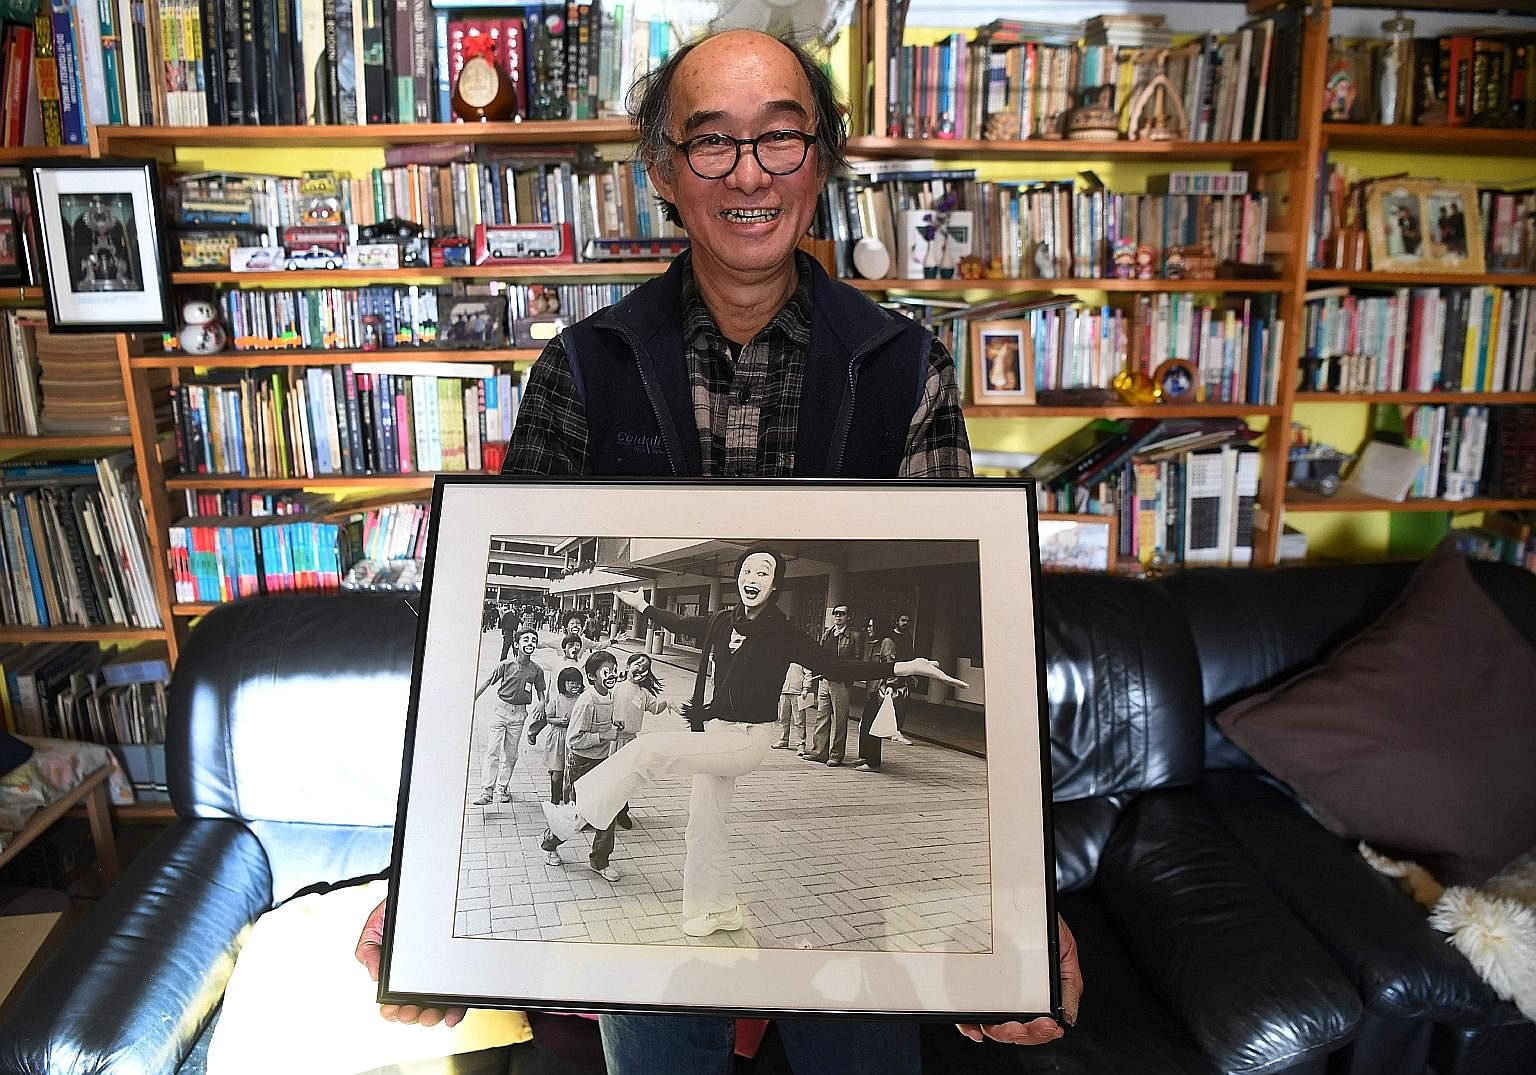 Mr Philip Fok with a photo of himself in his younger days as a mime artist in Hong Kong. He emigrated to Sydney in 1992. Hong Kong residents holding up placards with words depicting their feelings about the city as the 20th anniversary of its handove